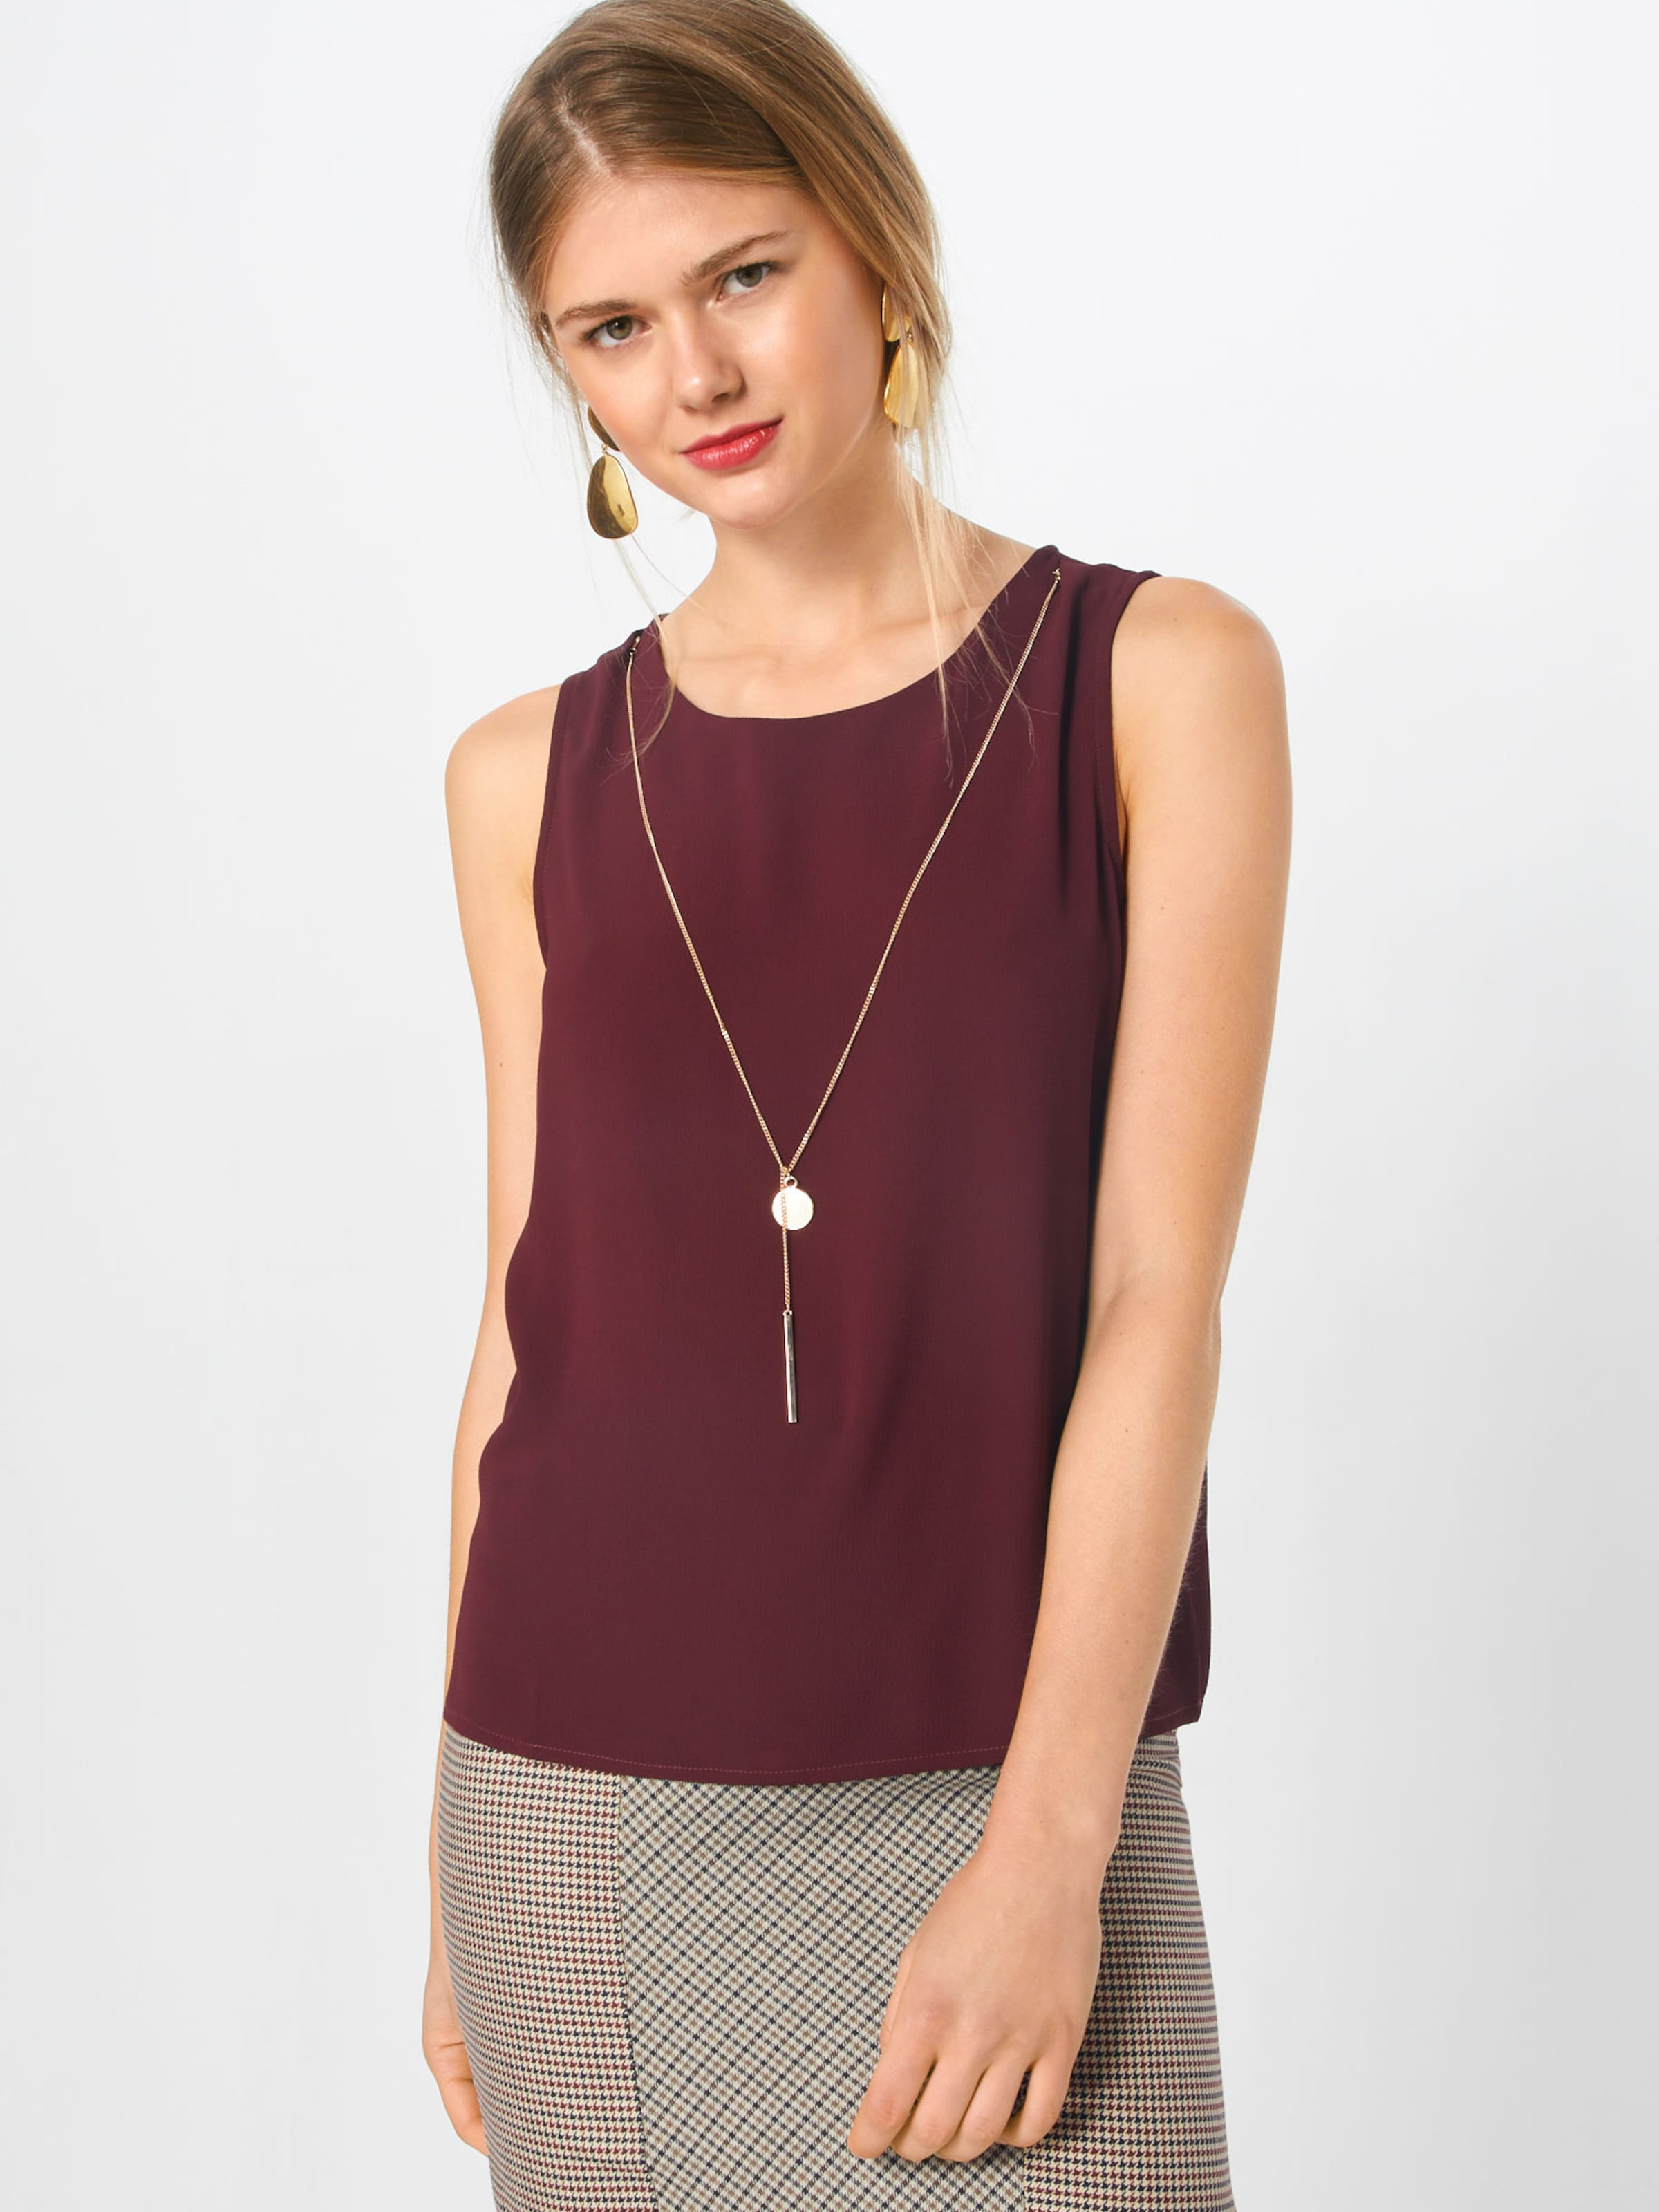 About You In Bordeaux Top 'cassandra' QhrdCts